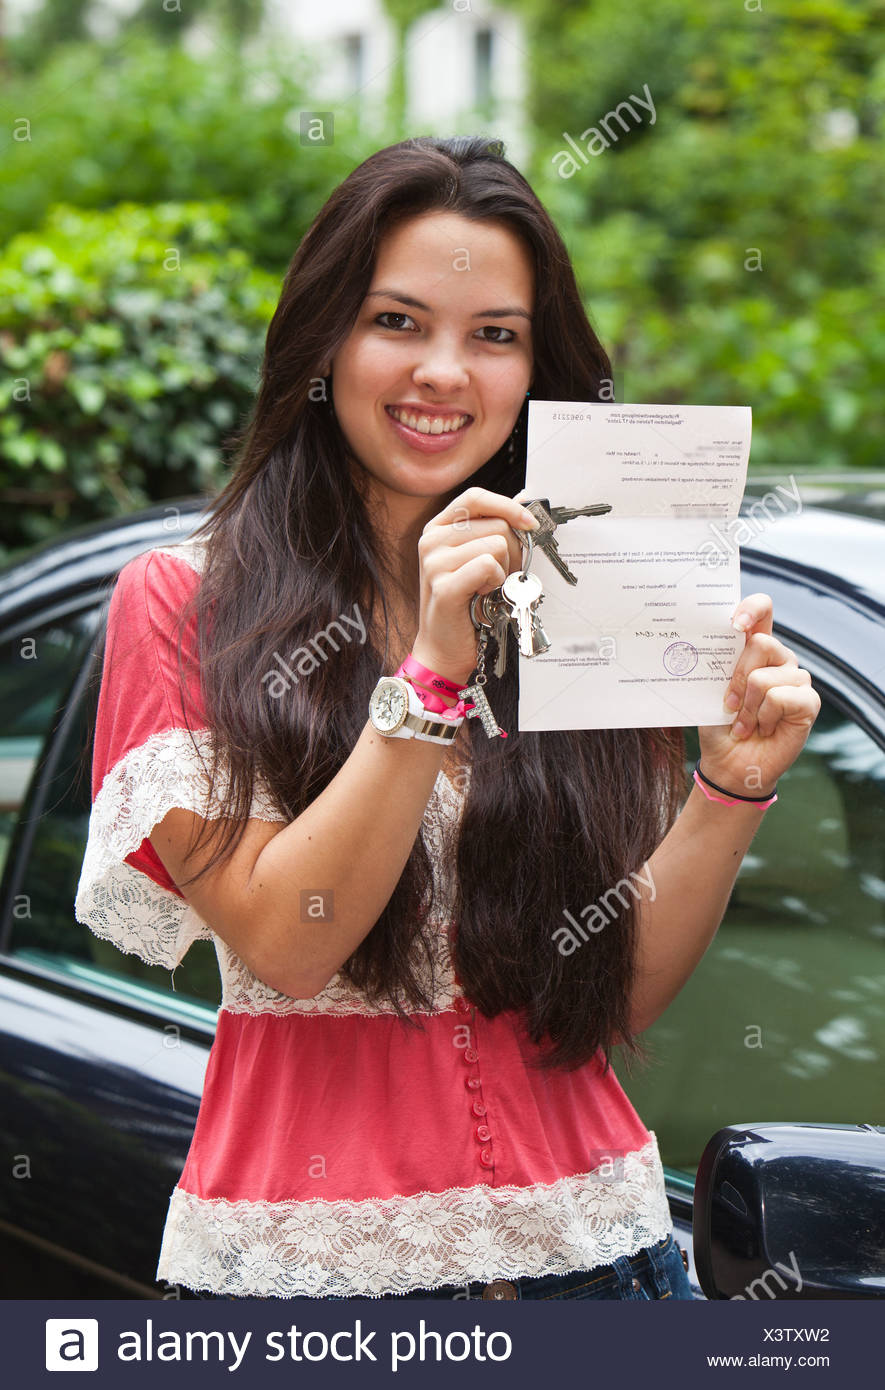 Girl, about 17 years, proudly presenting her driving license for 'Accompanied Driving for Drivers Aged 17+', Hesse - Stock Image